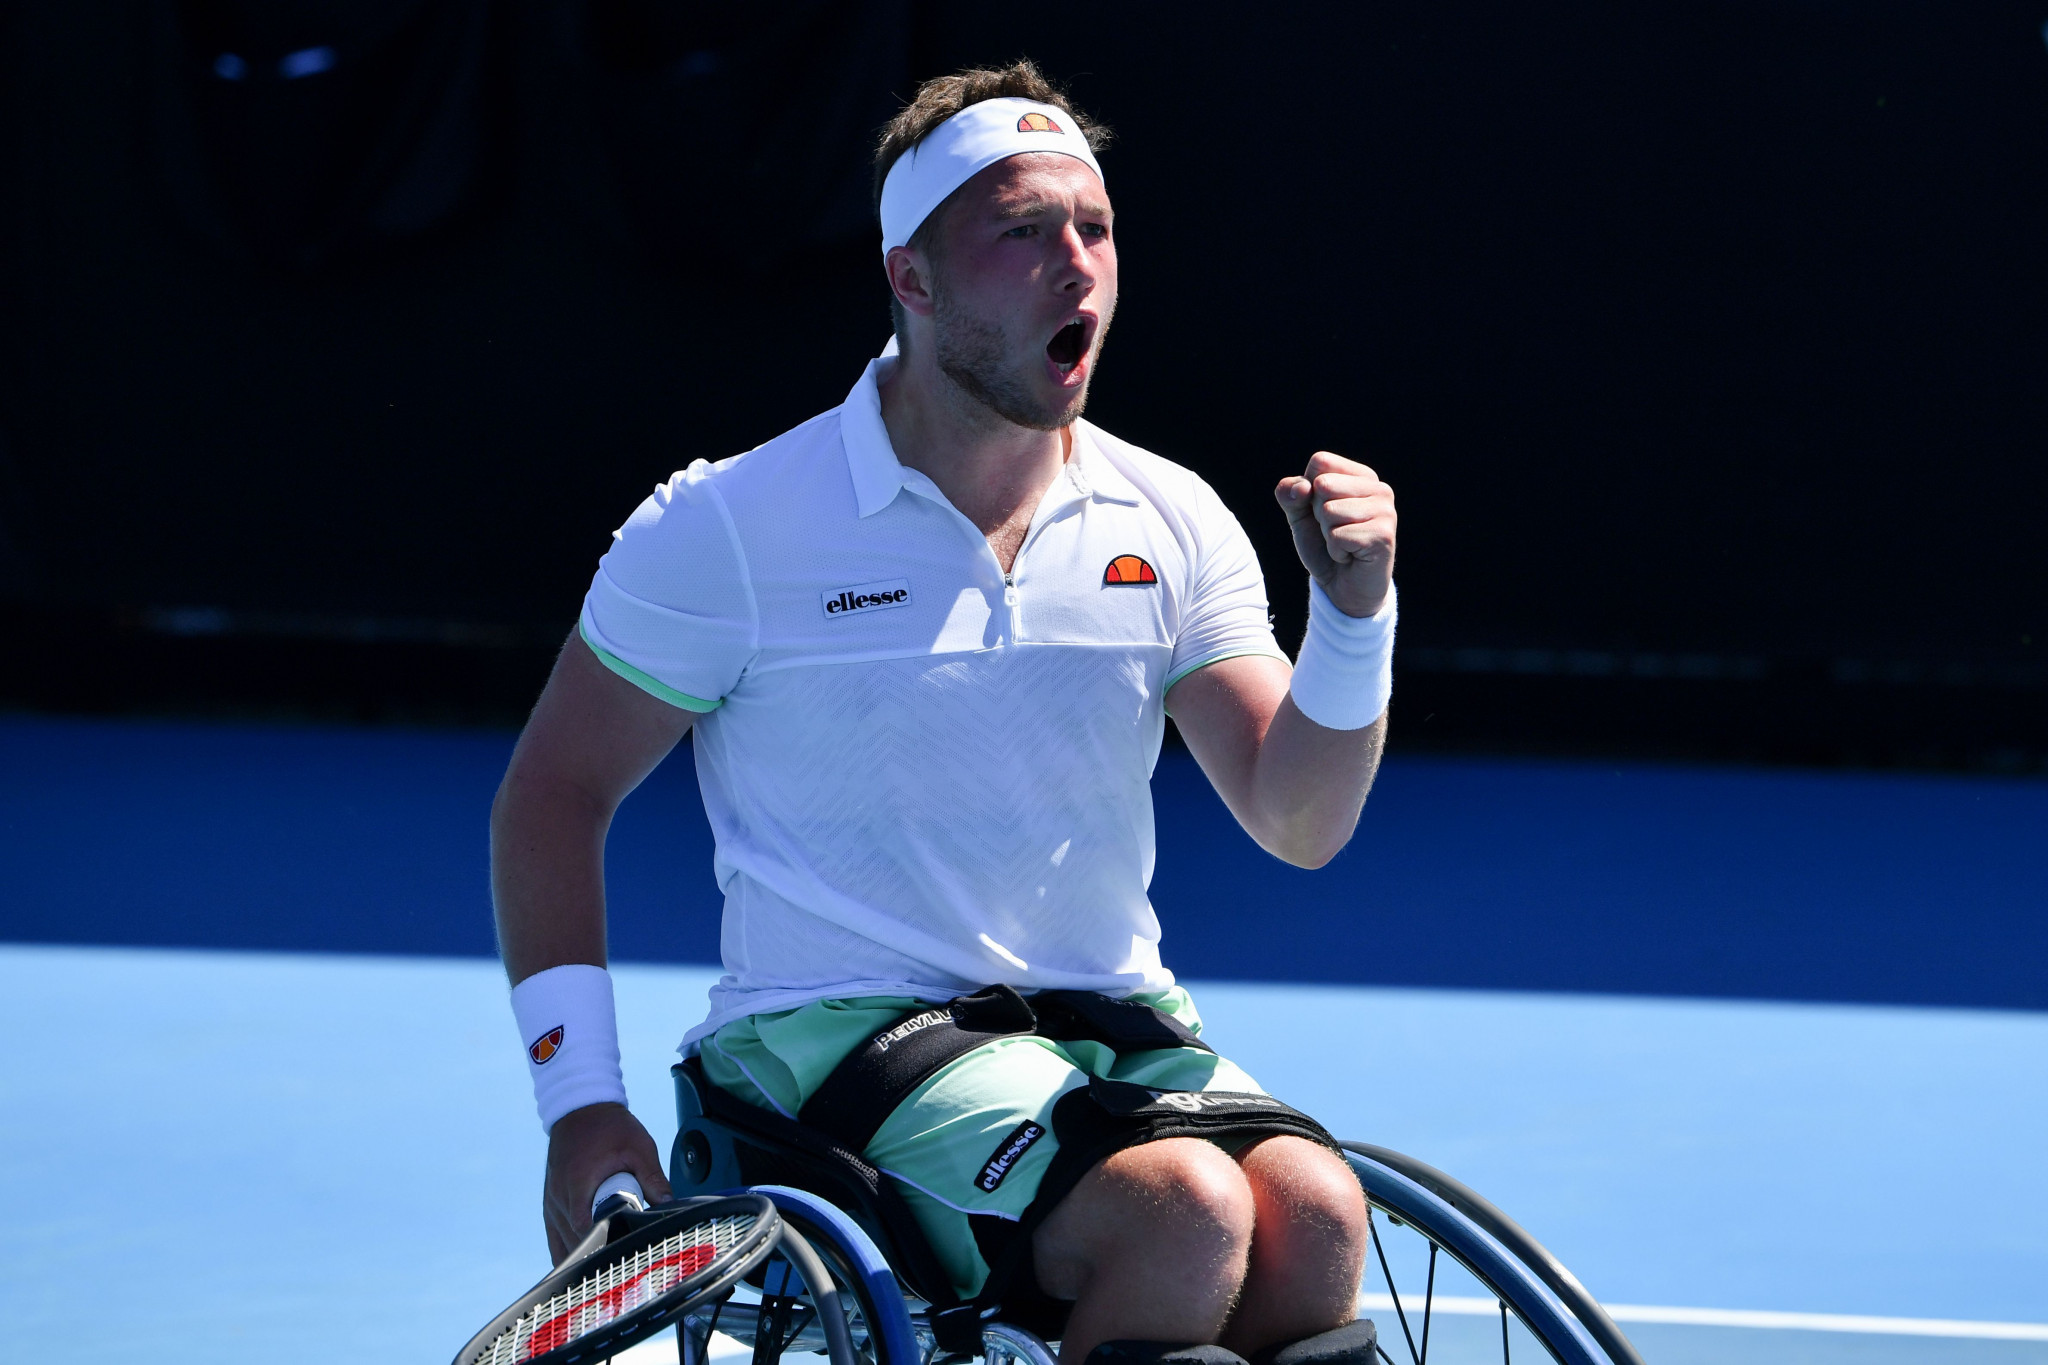 Alfie Hewett is one of over 70 athletes who have qualified for the Tokyo 2020 Paralympics today following the closure of the rankings ©Getty Images